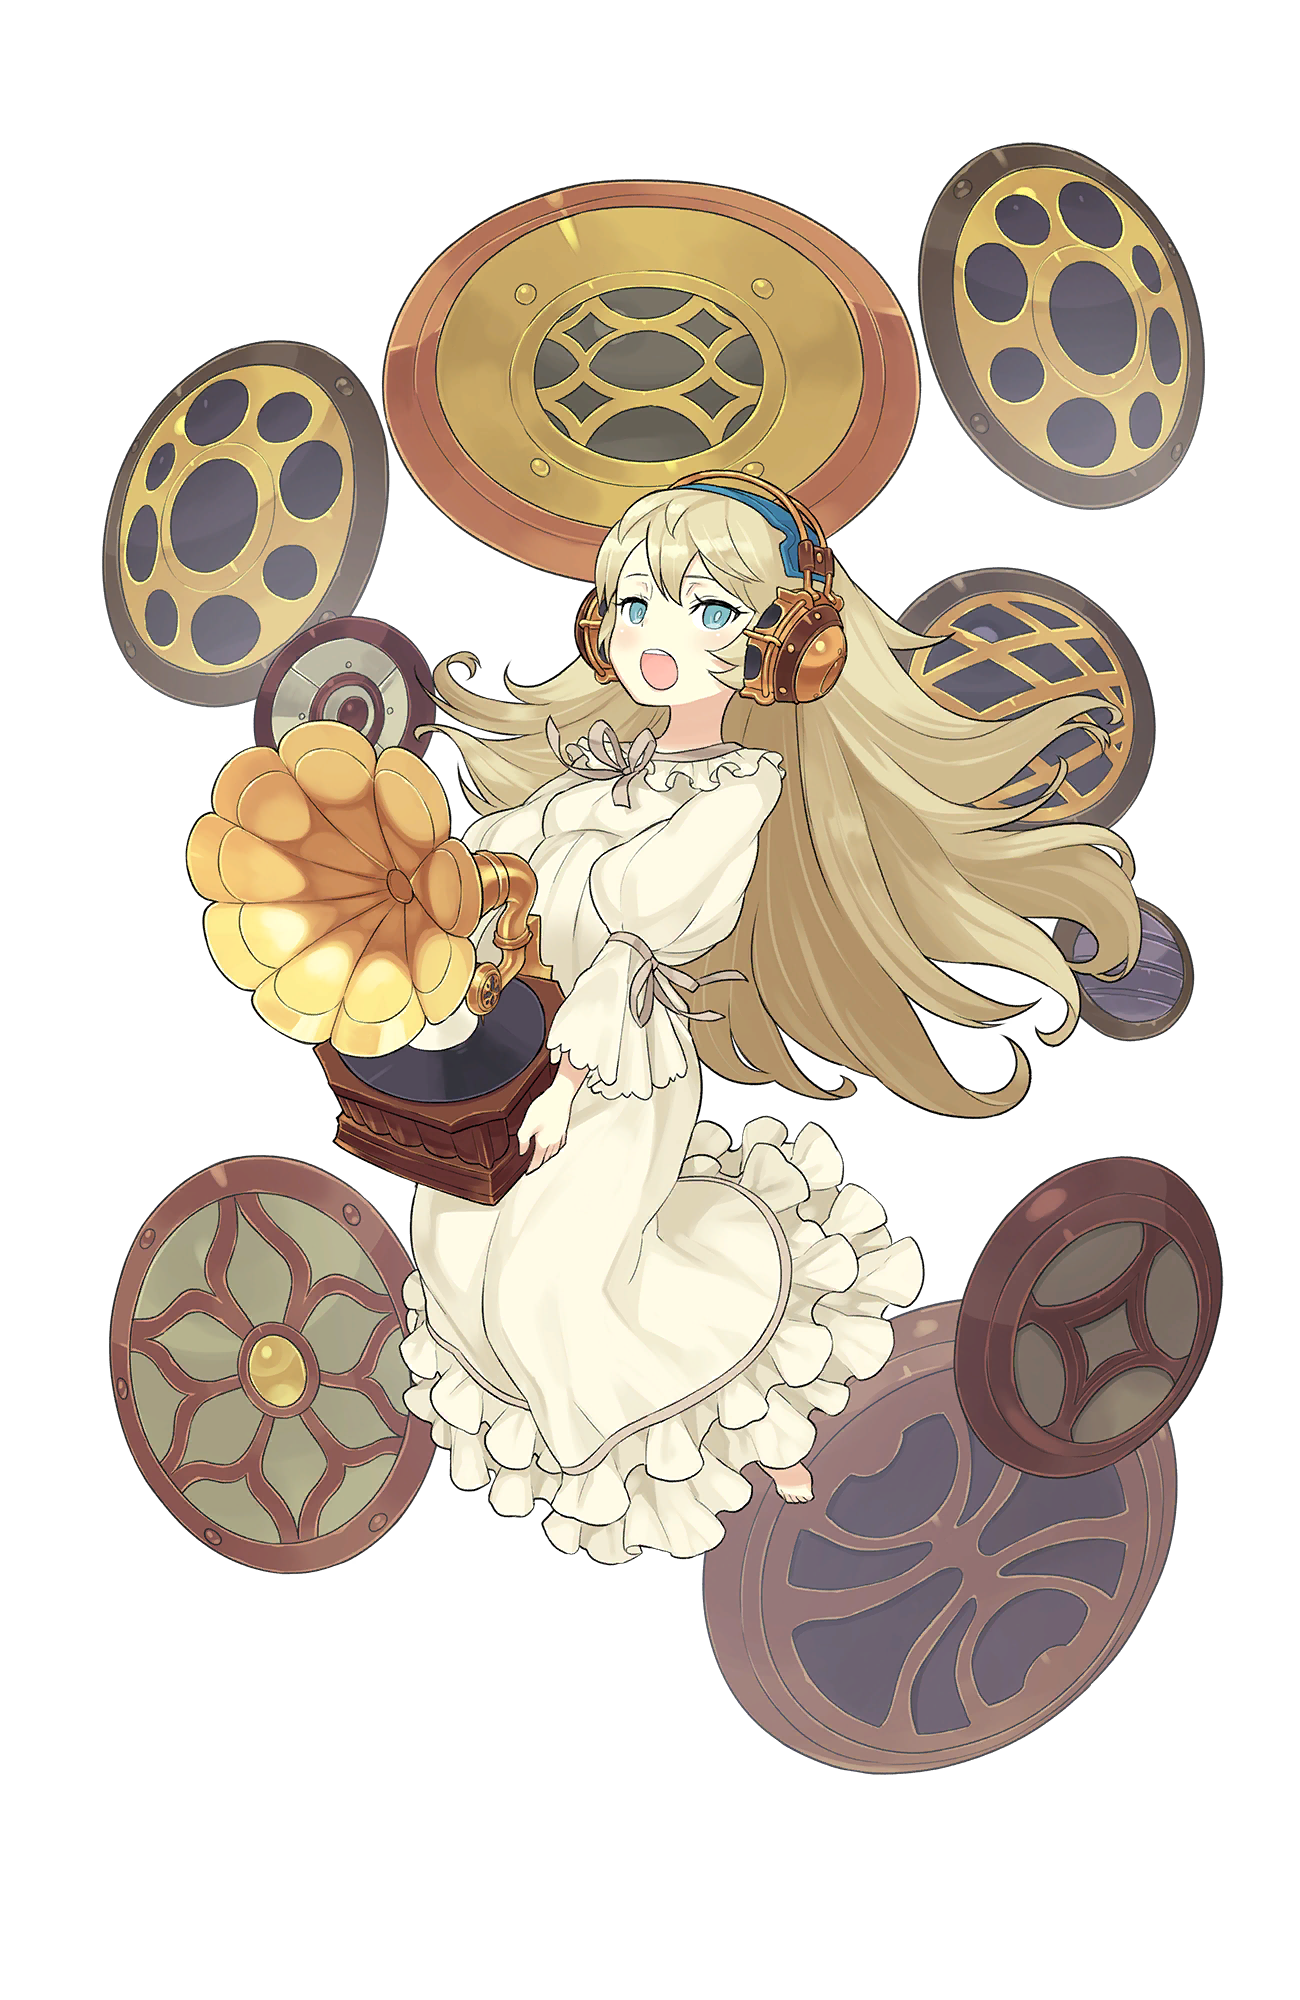 character000142_image_out_game.png